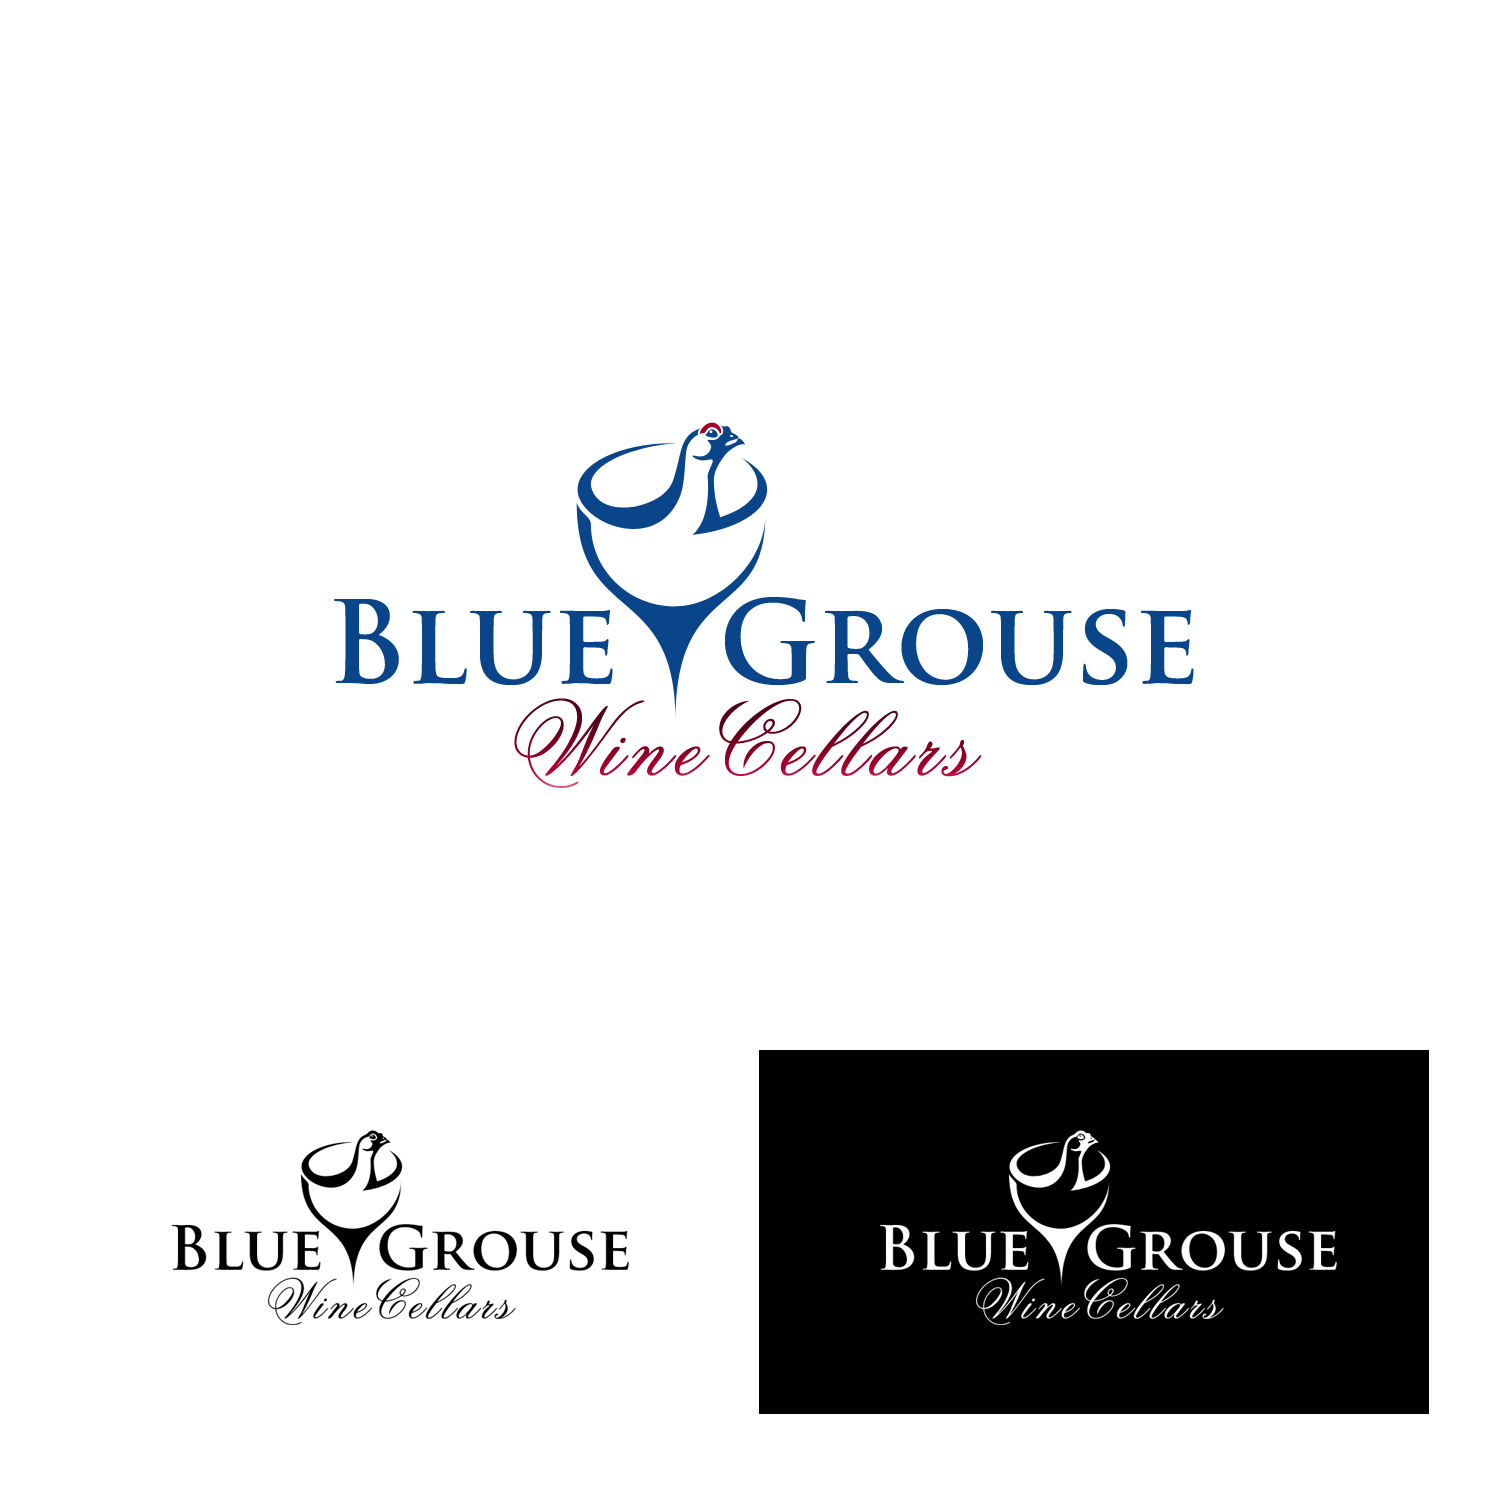 Logo Design by Private User - Entry No. 57 in the Logo Design Contest Creative Logo Design for Blue Grouse Wine Cellars.